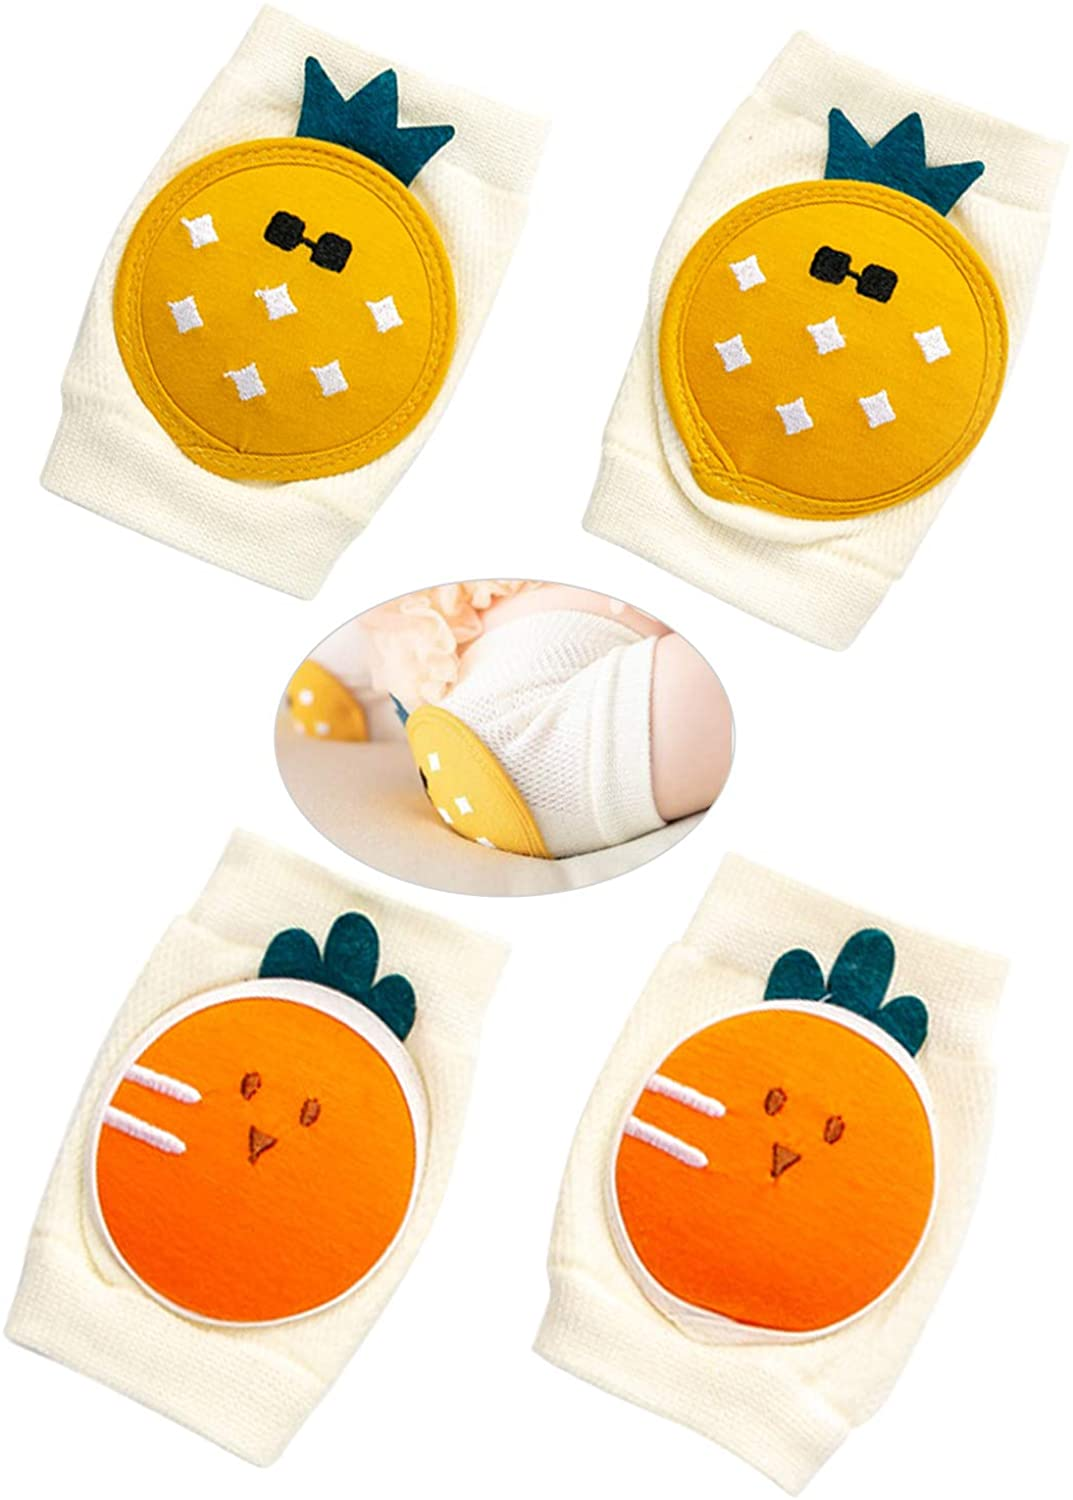 ZYNERY Baby Knee Pads for Crawling, Anti-Slip&Breathable Knee Pads Protector For Crawling and Safety Walking, Unisex Baby Toddlers Kneepads